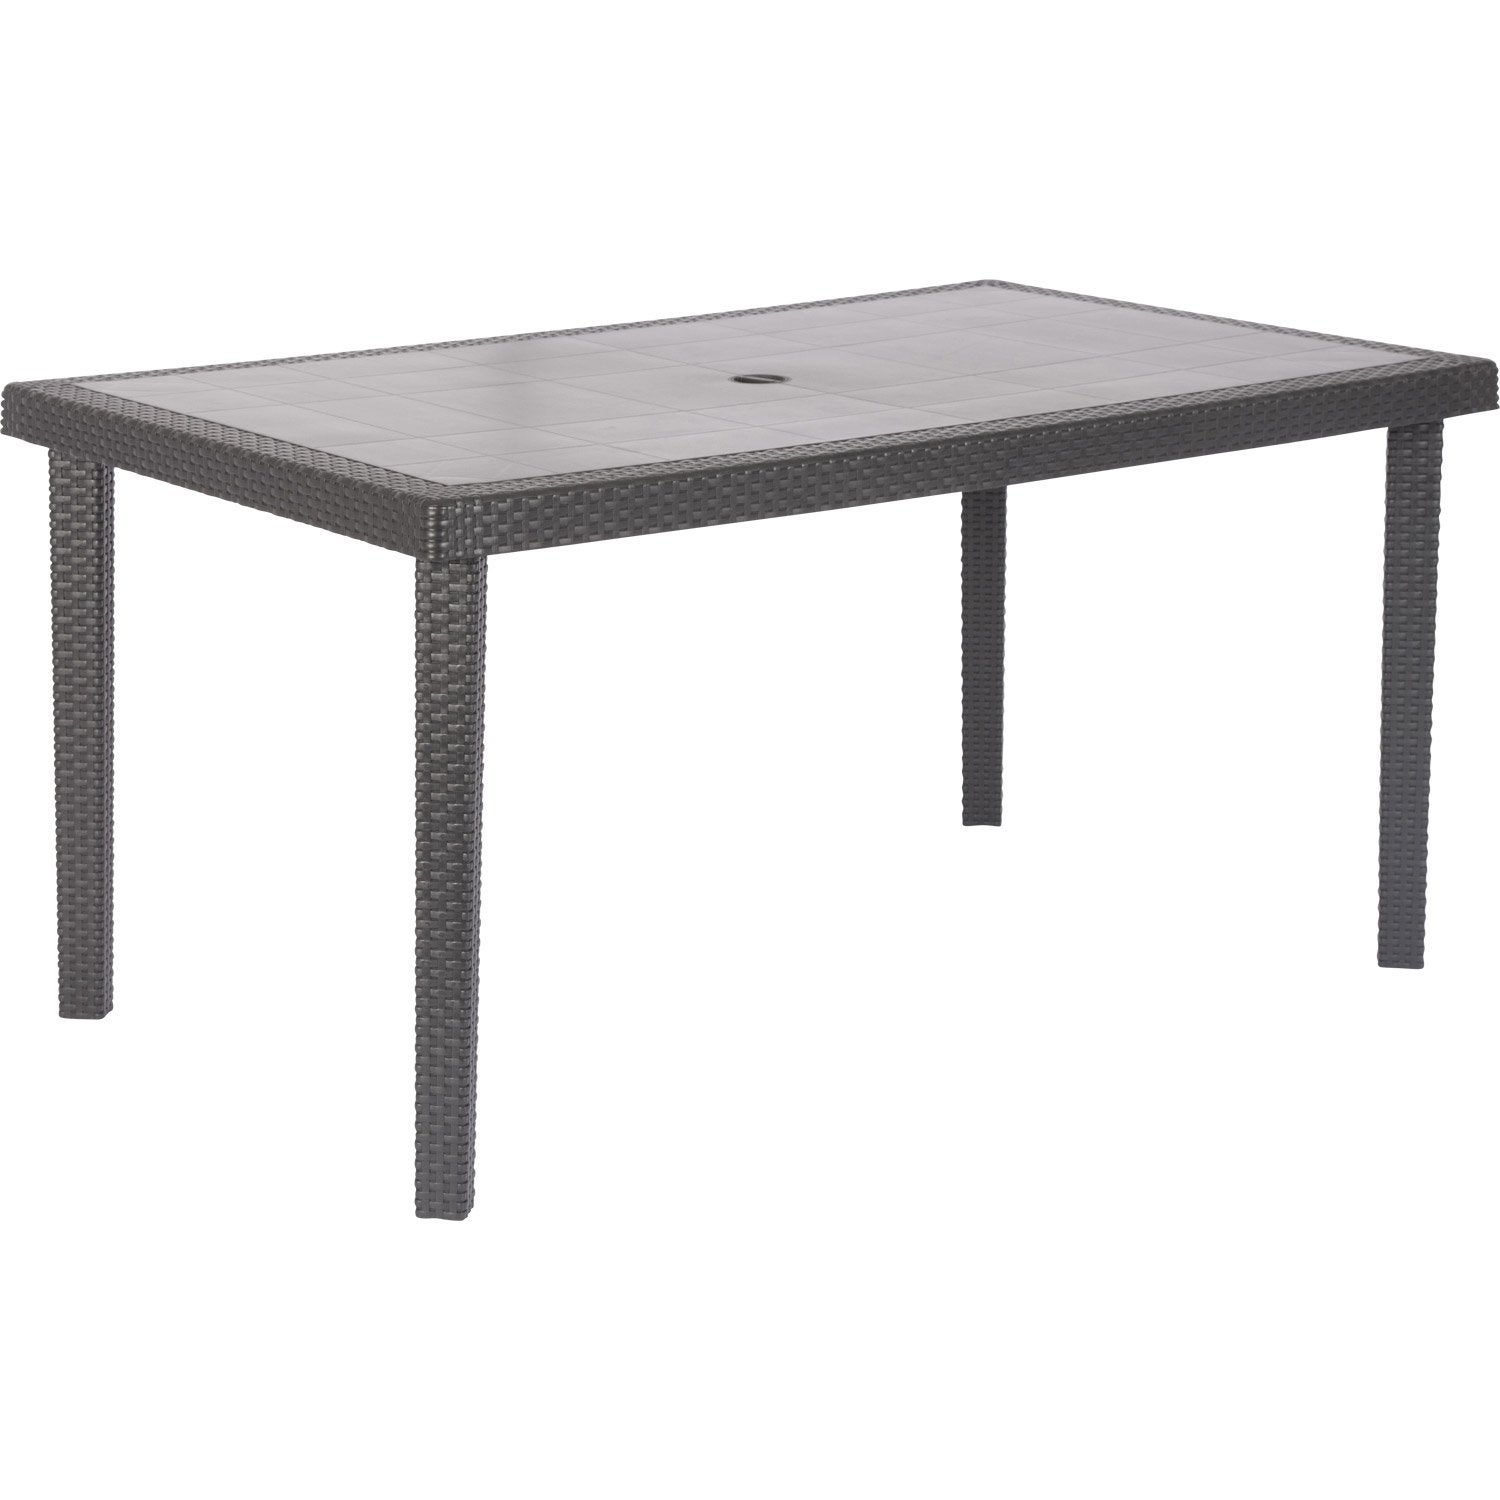 Table de jardin boh me rectangulaire anthracite 6 - Leroy merlin table pliante ...